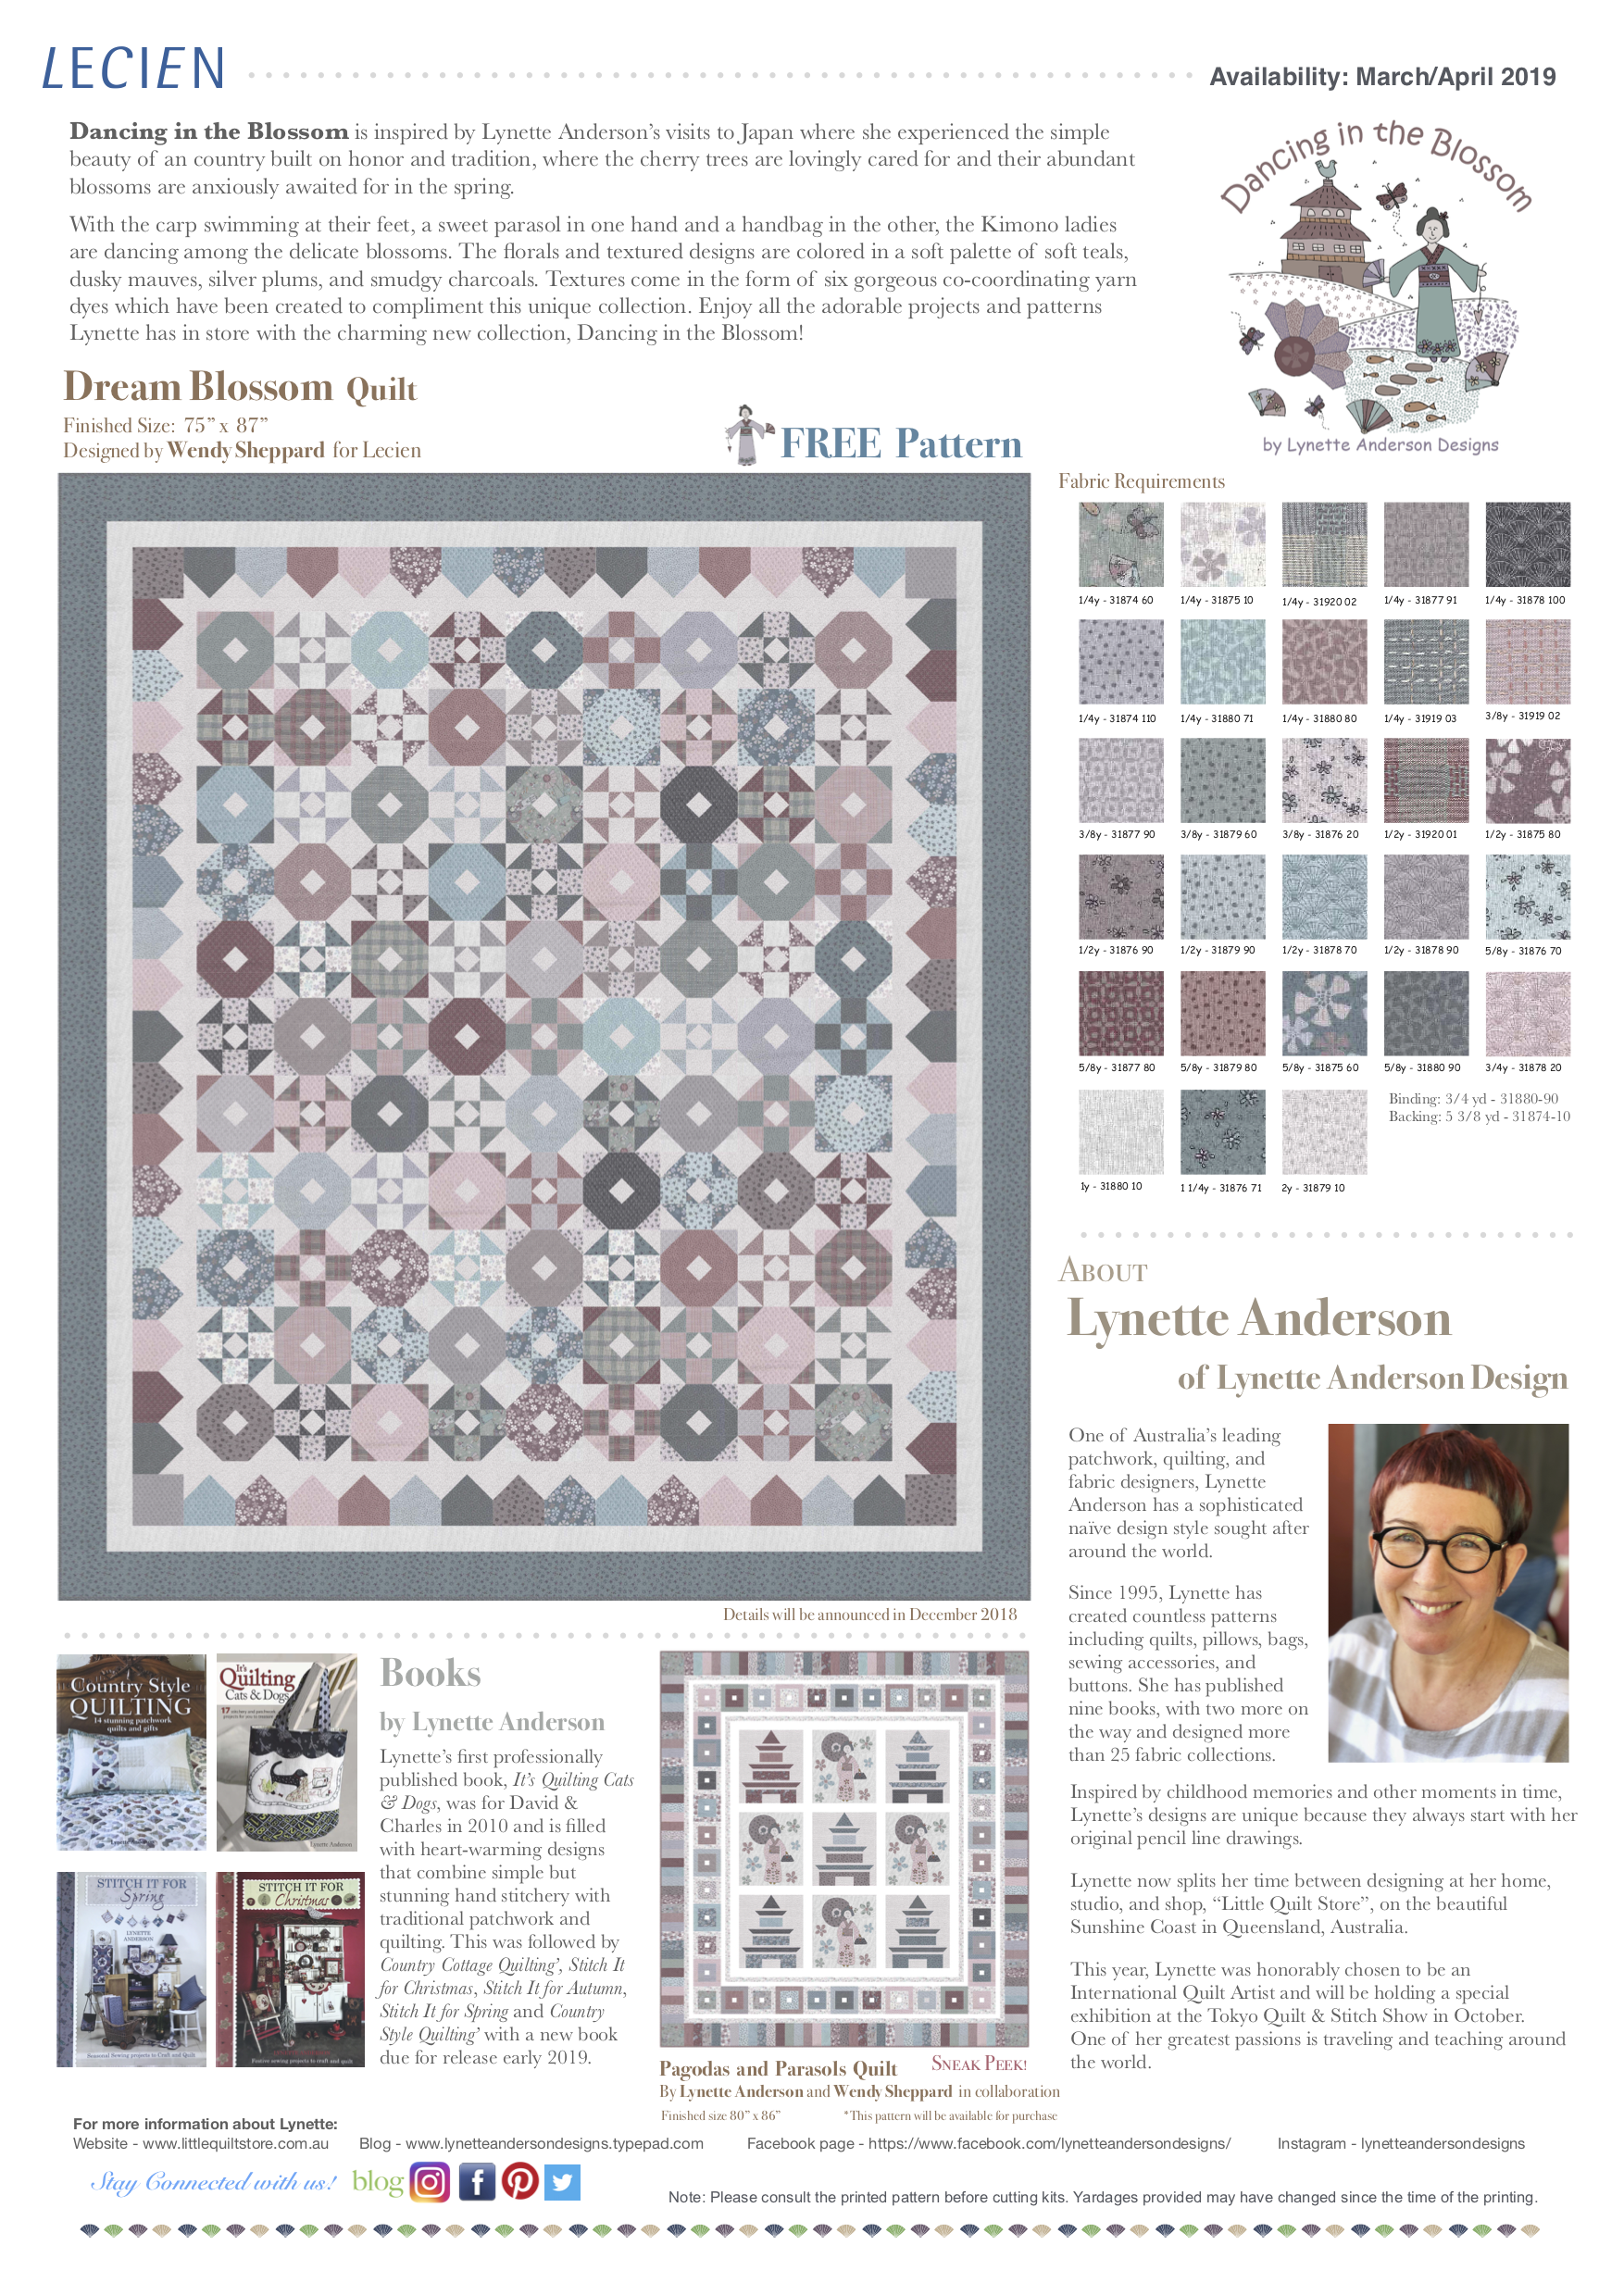 Dream Blossom Quilt featuring Dancing in the Blossom Collection